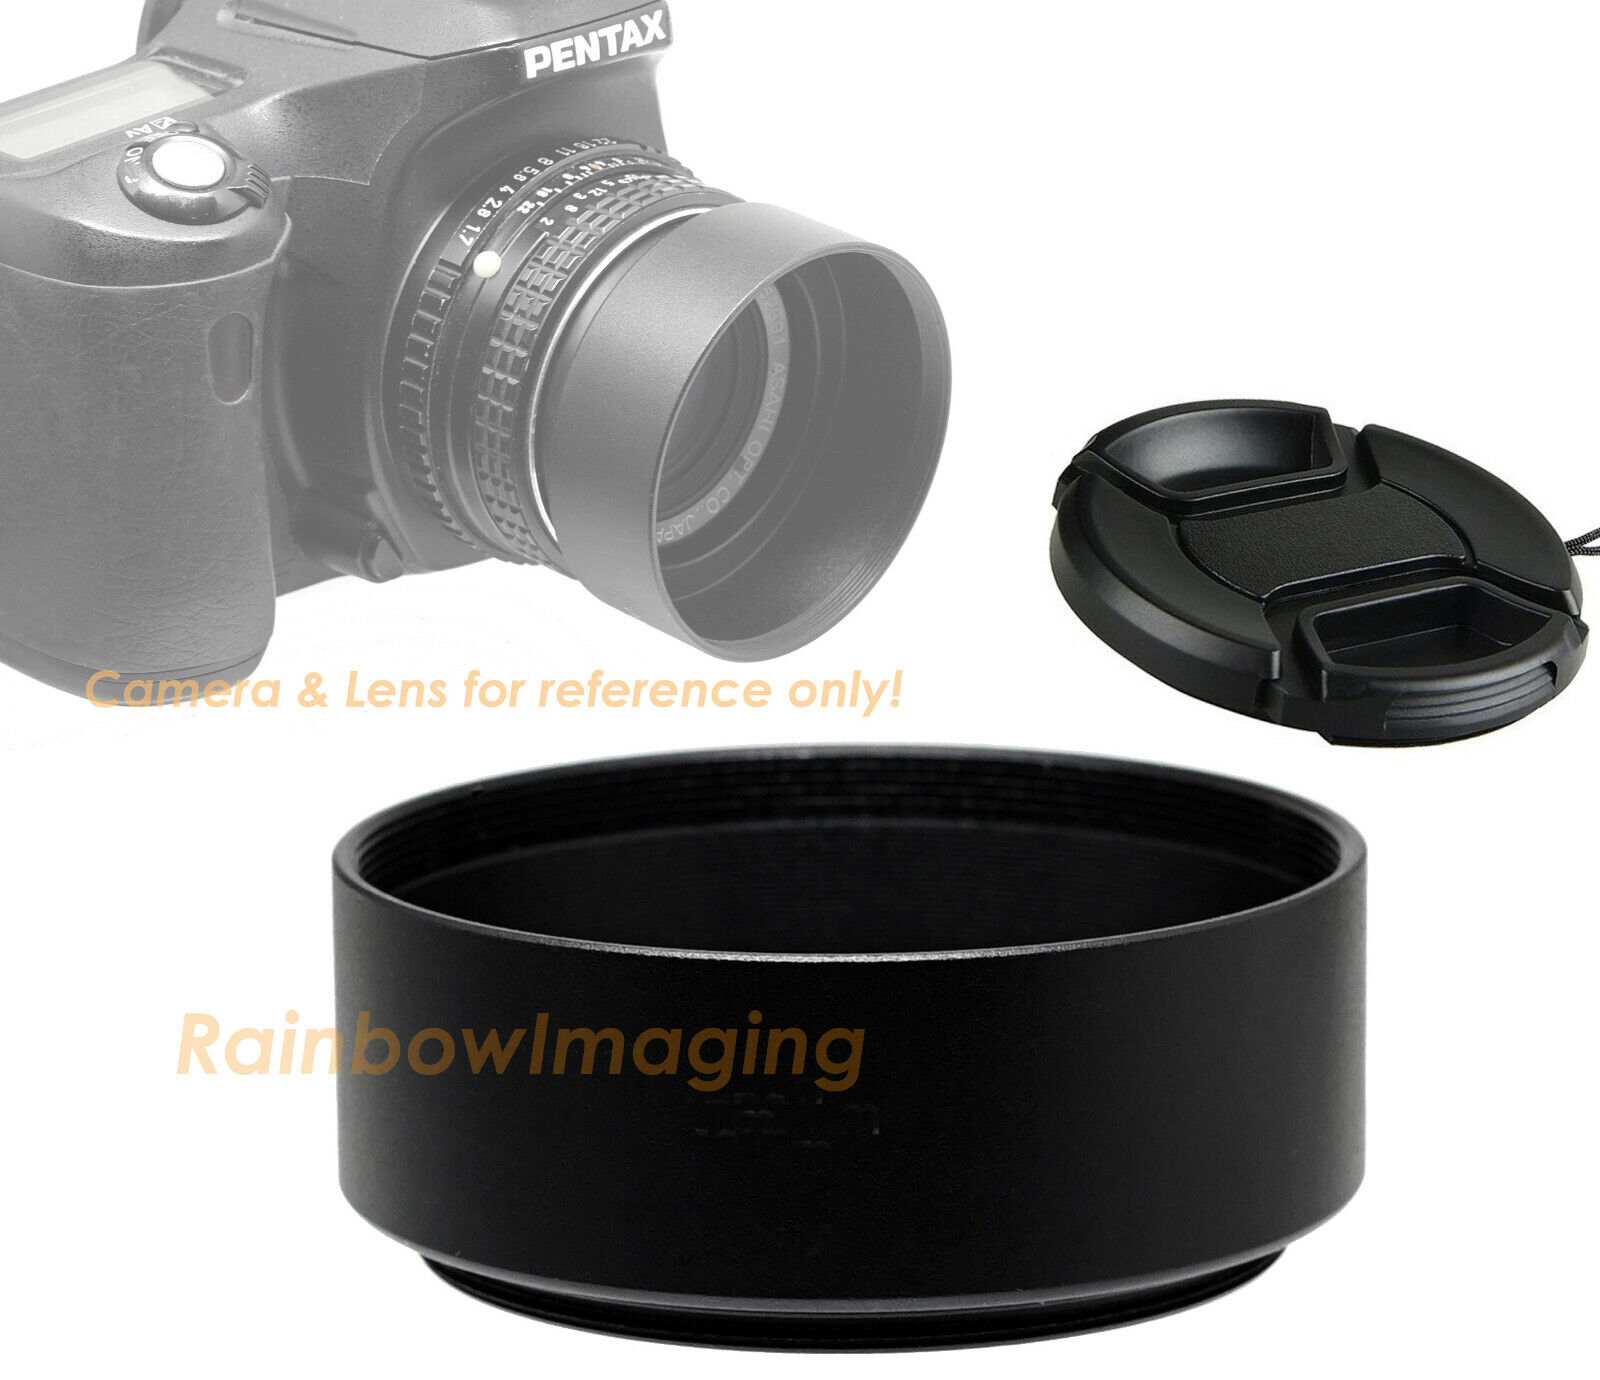 Cleaning Cloth 55mm Metal Standard Screw-in Standard Lens Hood Sunshade with Centre Pinch Lens Cap for Canon Nikon Sony Pentax Olympus Fuji Sumsung Leica Camera